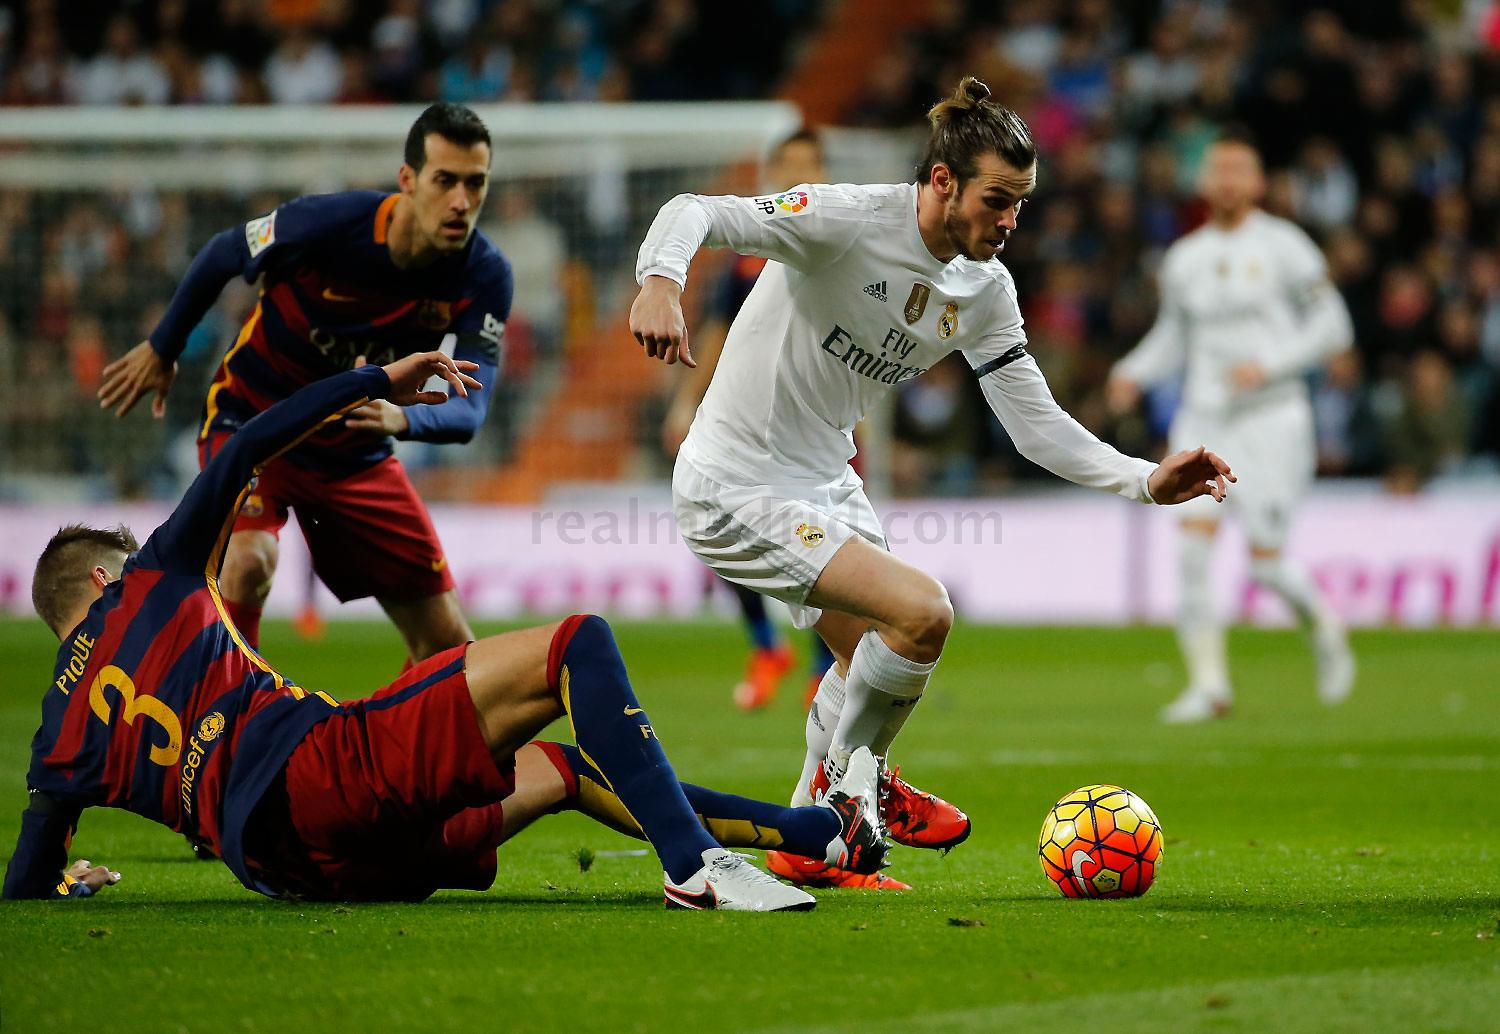 Real Madrid - Real Madrid - Barcelona - 21-11-2015